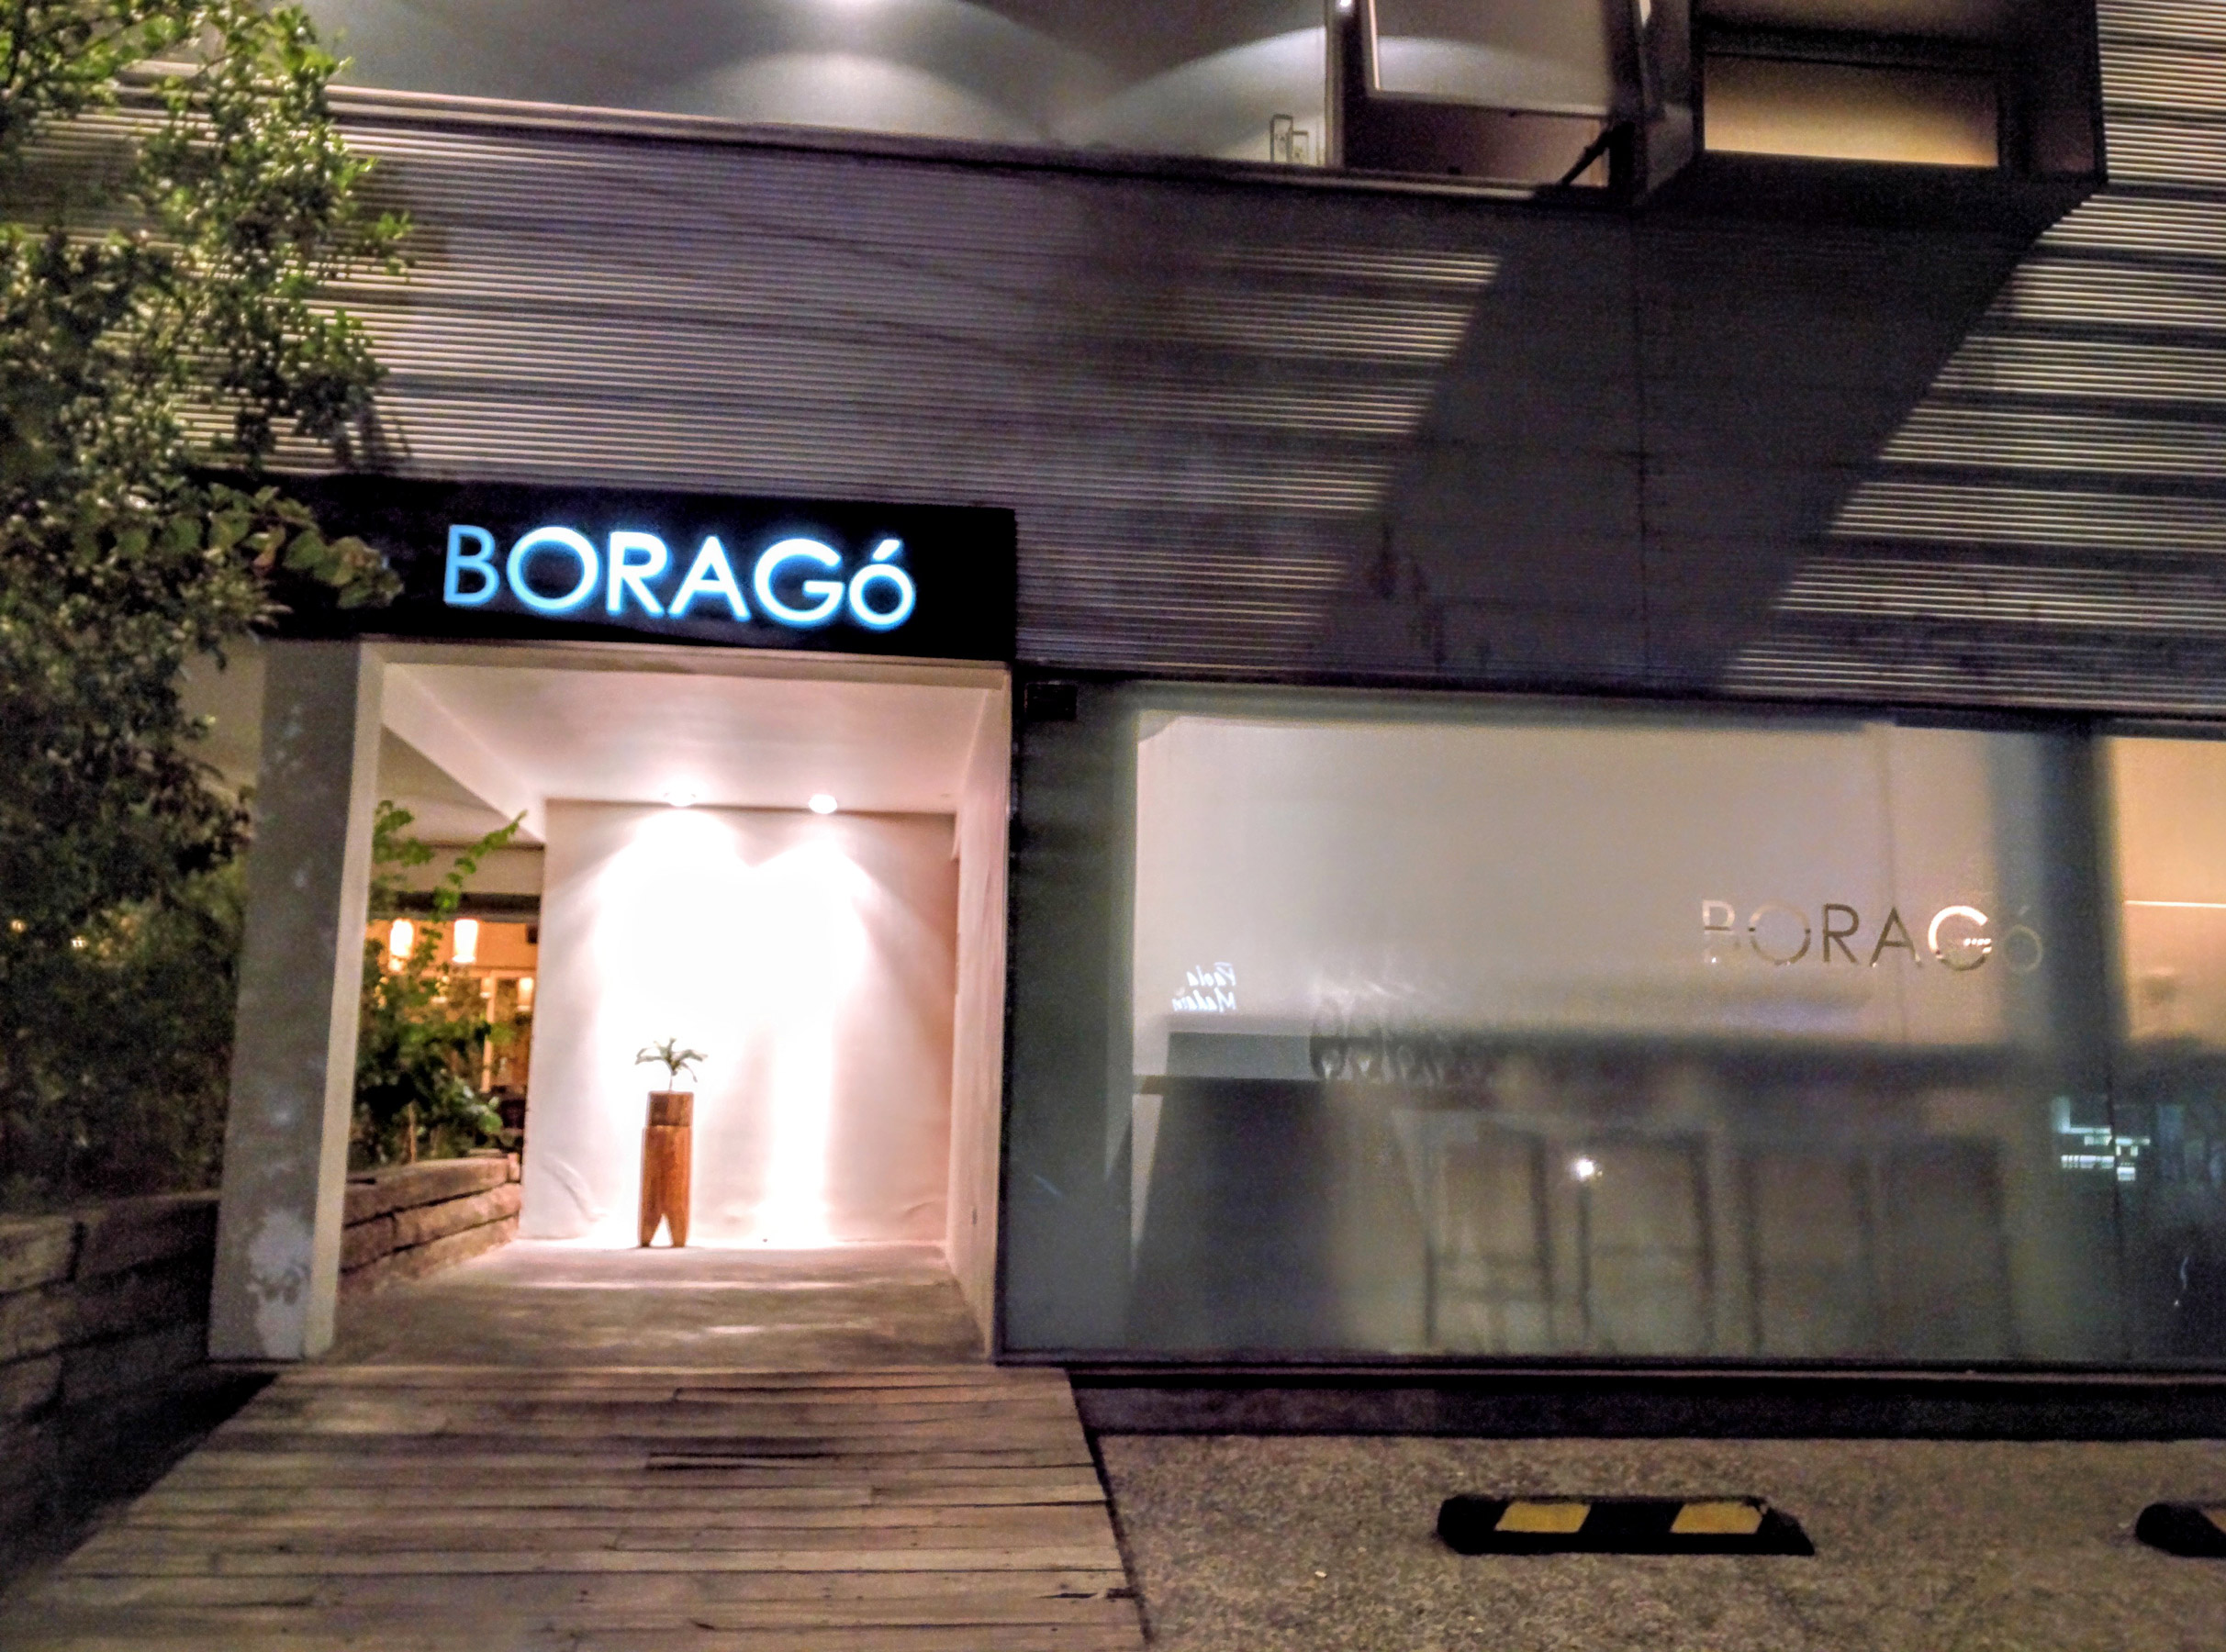 Boragó was named one of Latin America's 50 Best Restaurants in 2014.